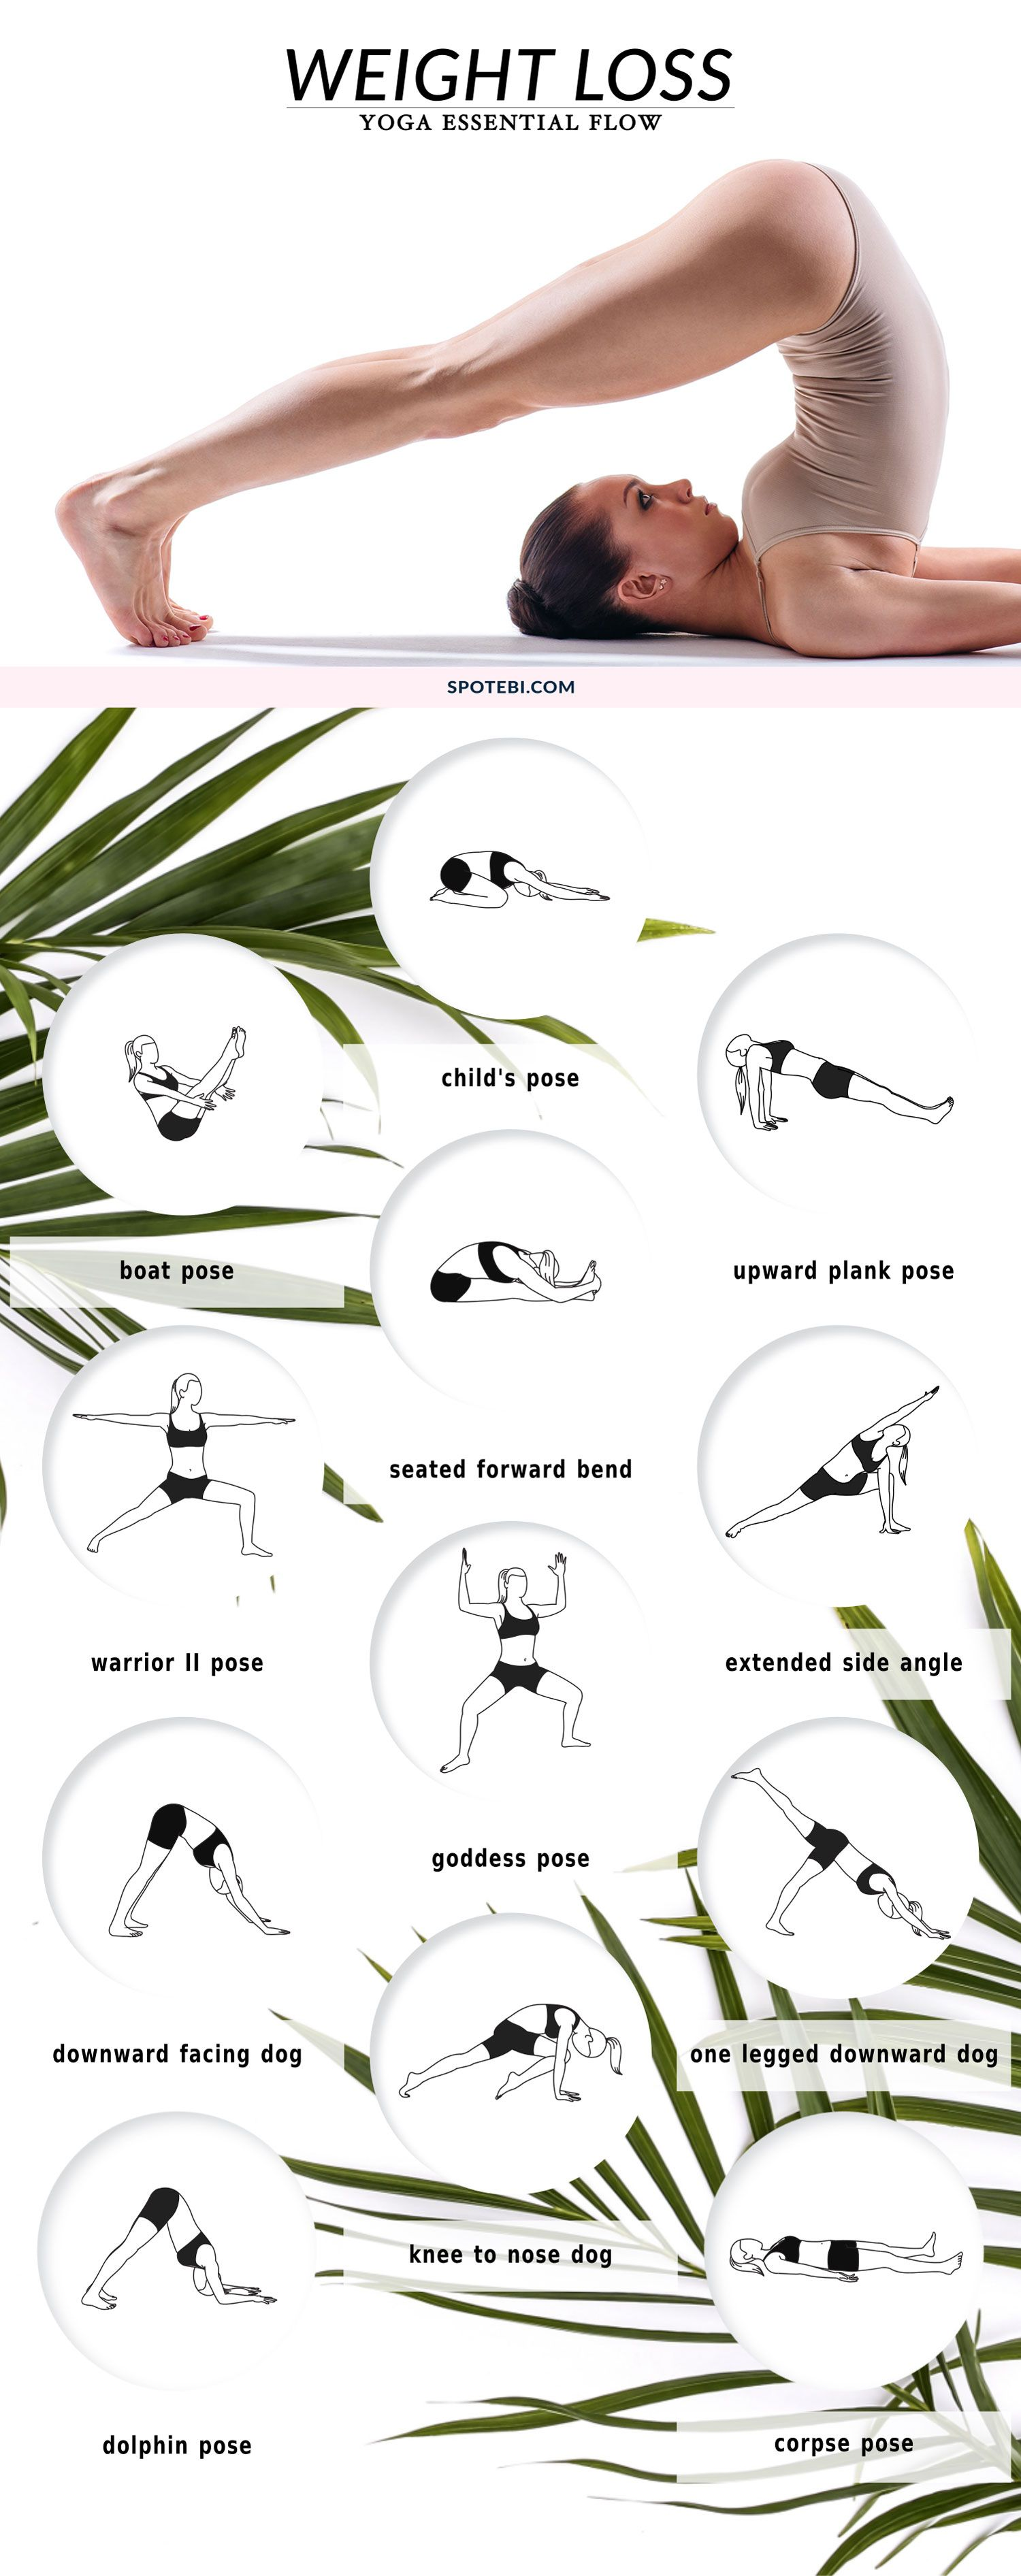 Yoga clipart gentle yoga. Weight loss sequence flow